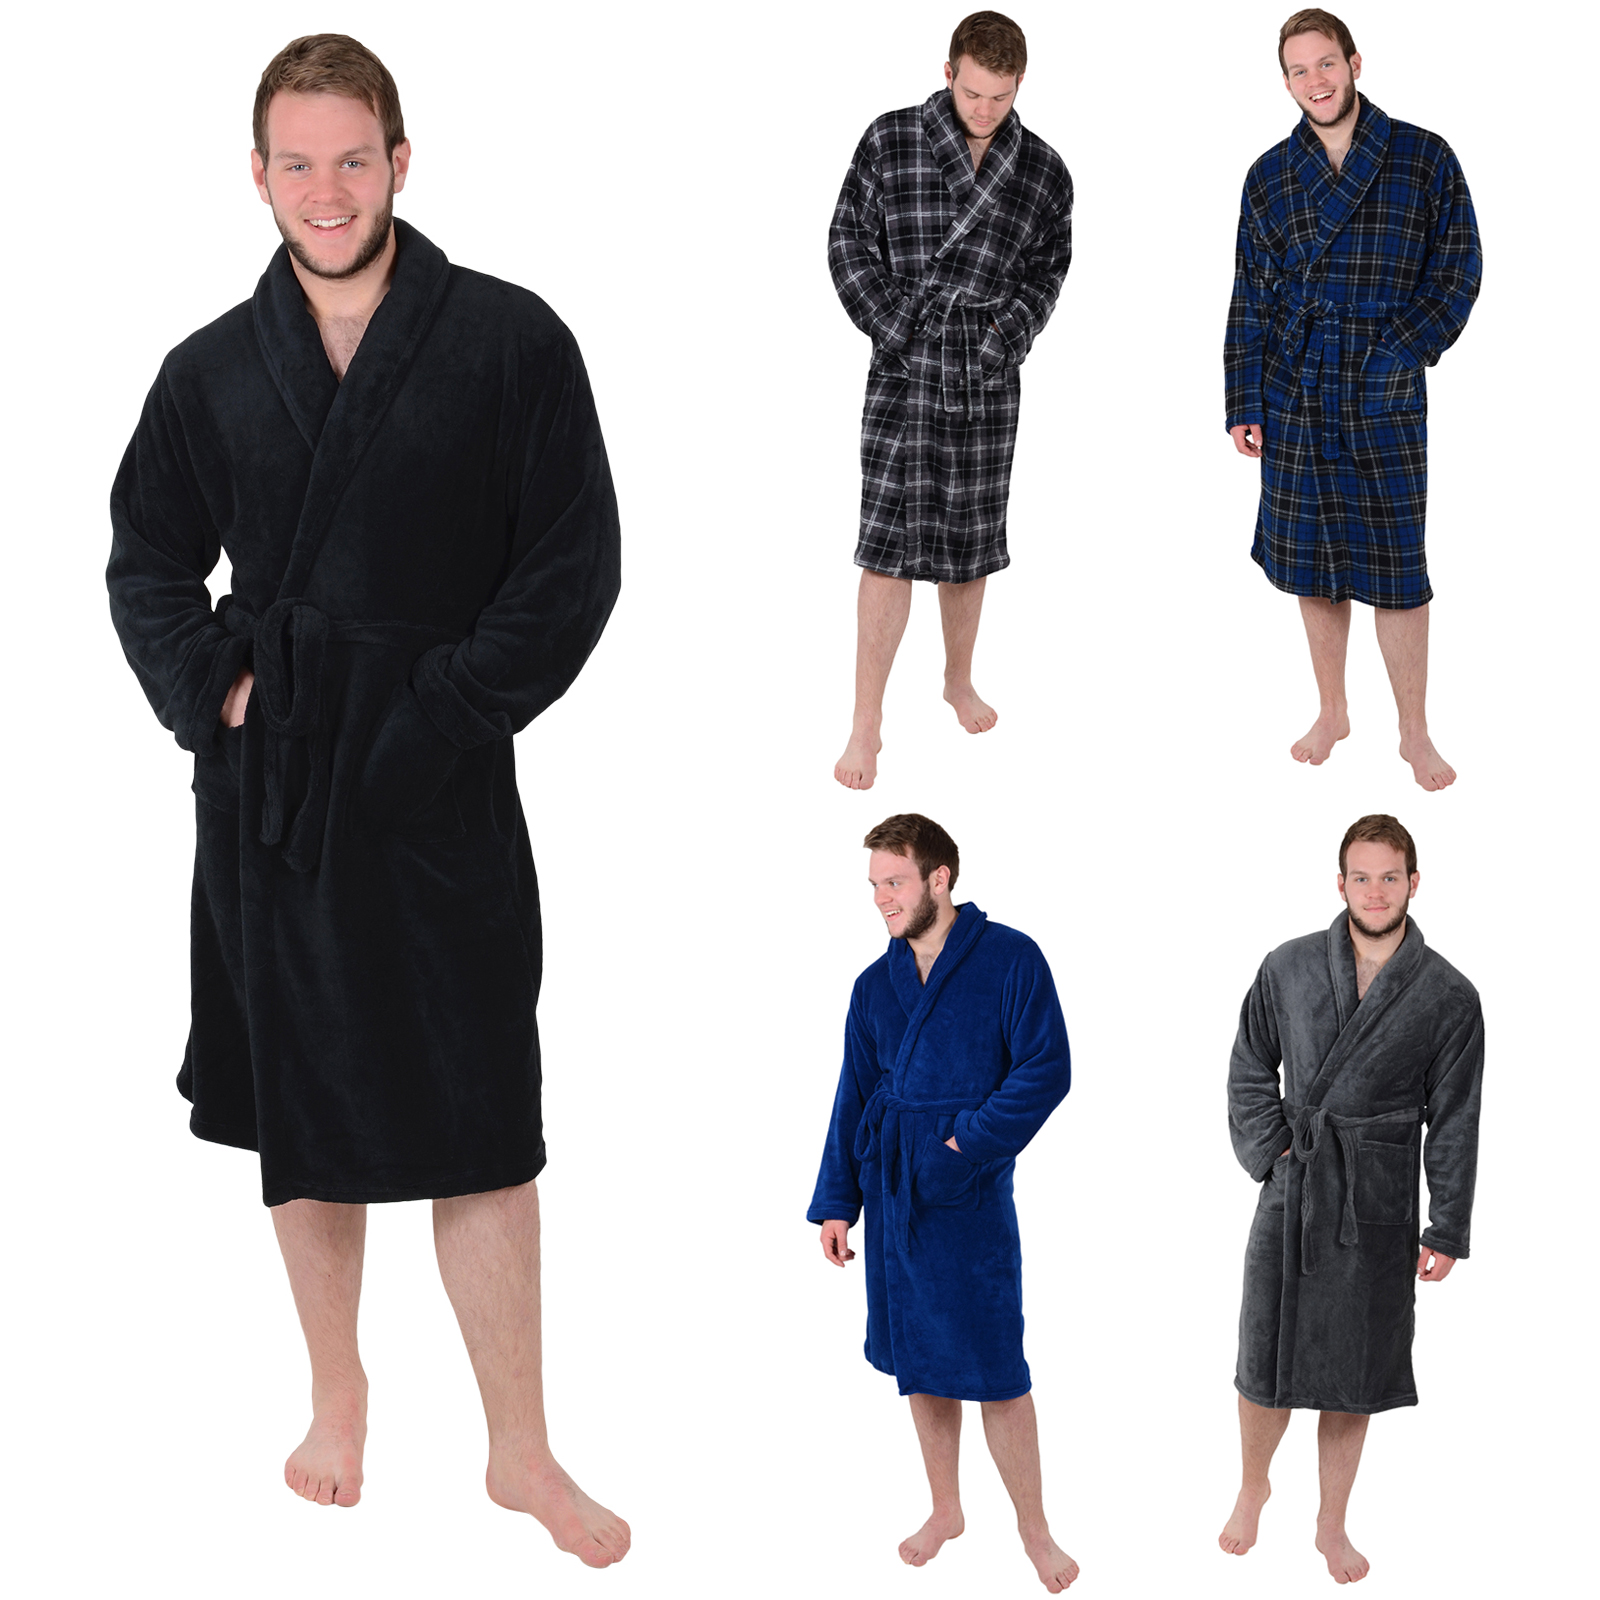 Short robes, long robes, robes that are made of soft material, or even rough material; no matter what preference you may have, there is a robe made just for you somewhere out there. 13 Best Robes For Men That Are Perfect For Around The House. Men's Waffle-Weave Kimono Robe.